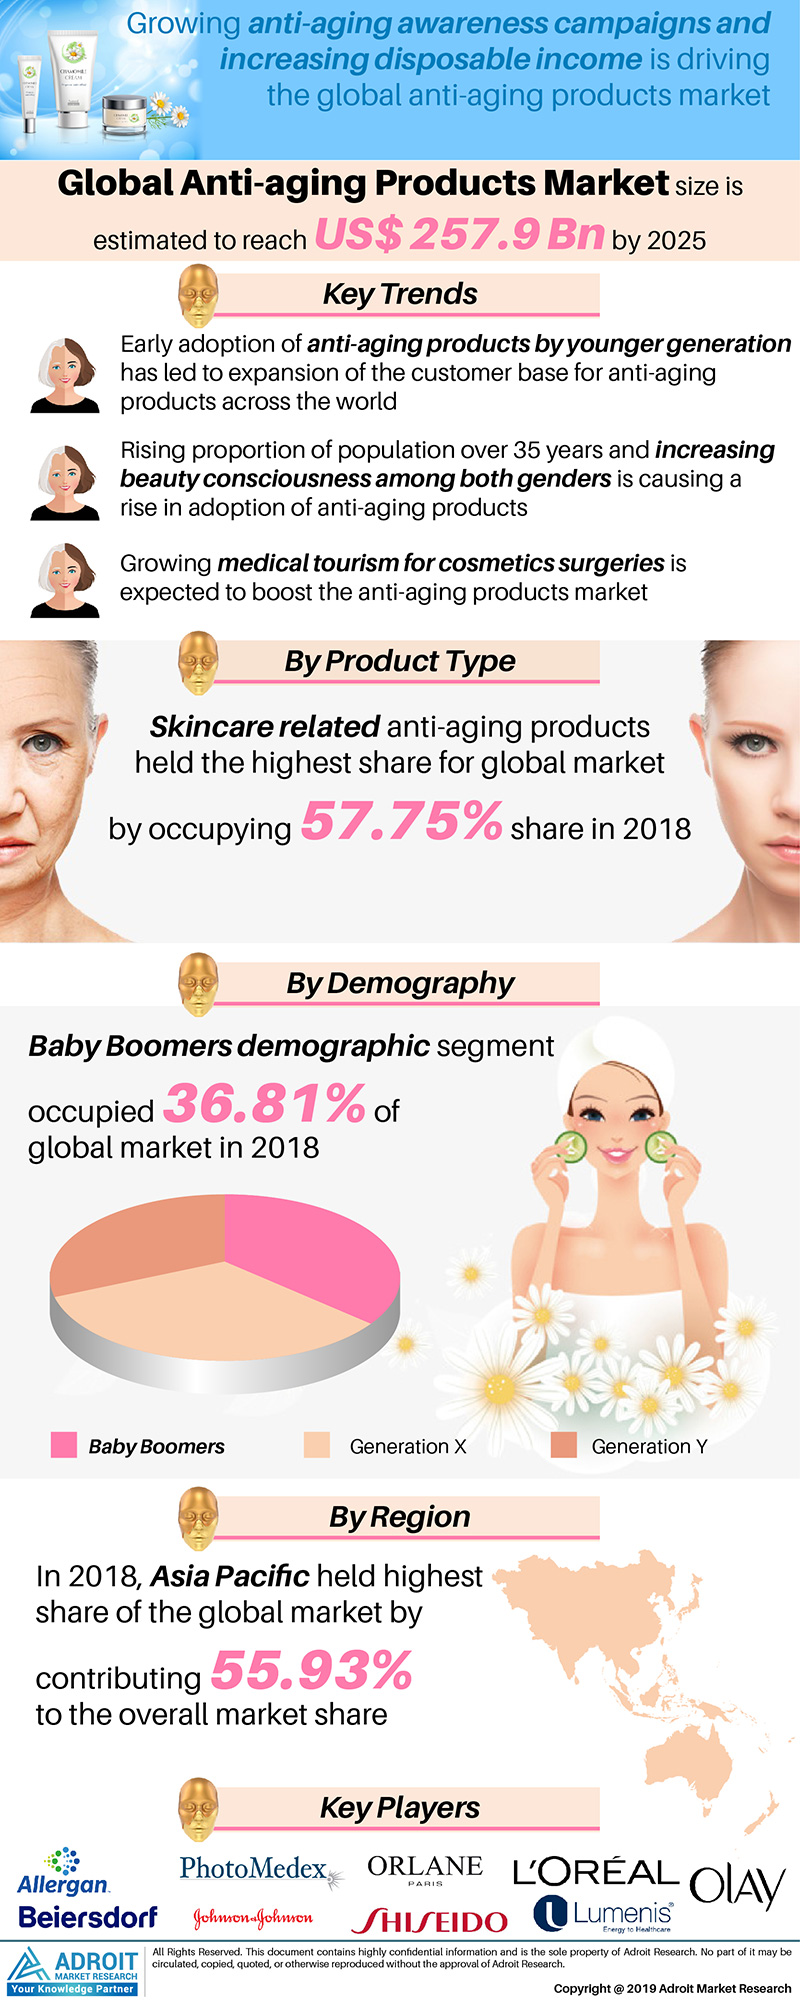 Anti-aging Products Market Sales Expected to Reach $ 257.9 Billion by 2025 – The Factors Shaping a Growing Market by Adroit Market Research 1